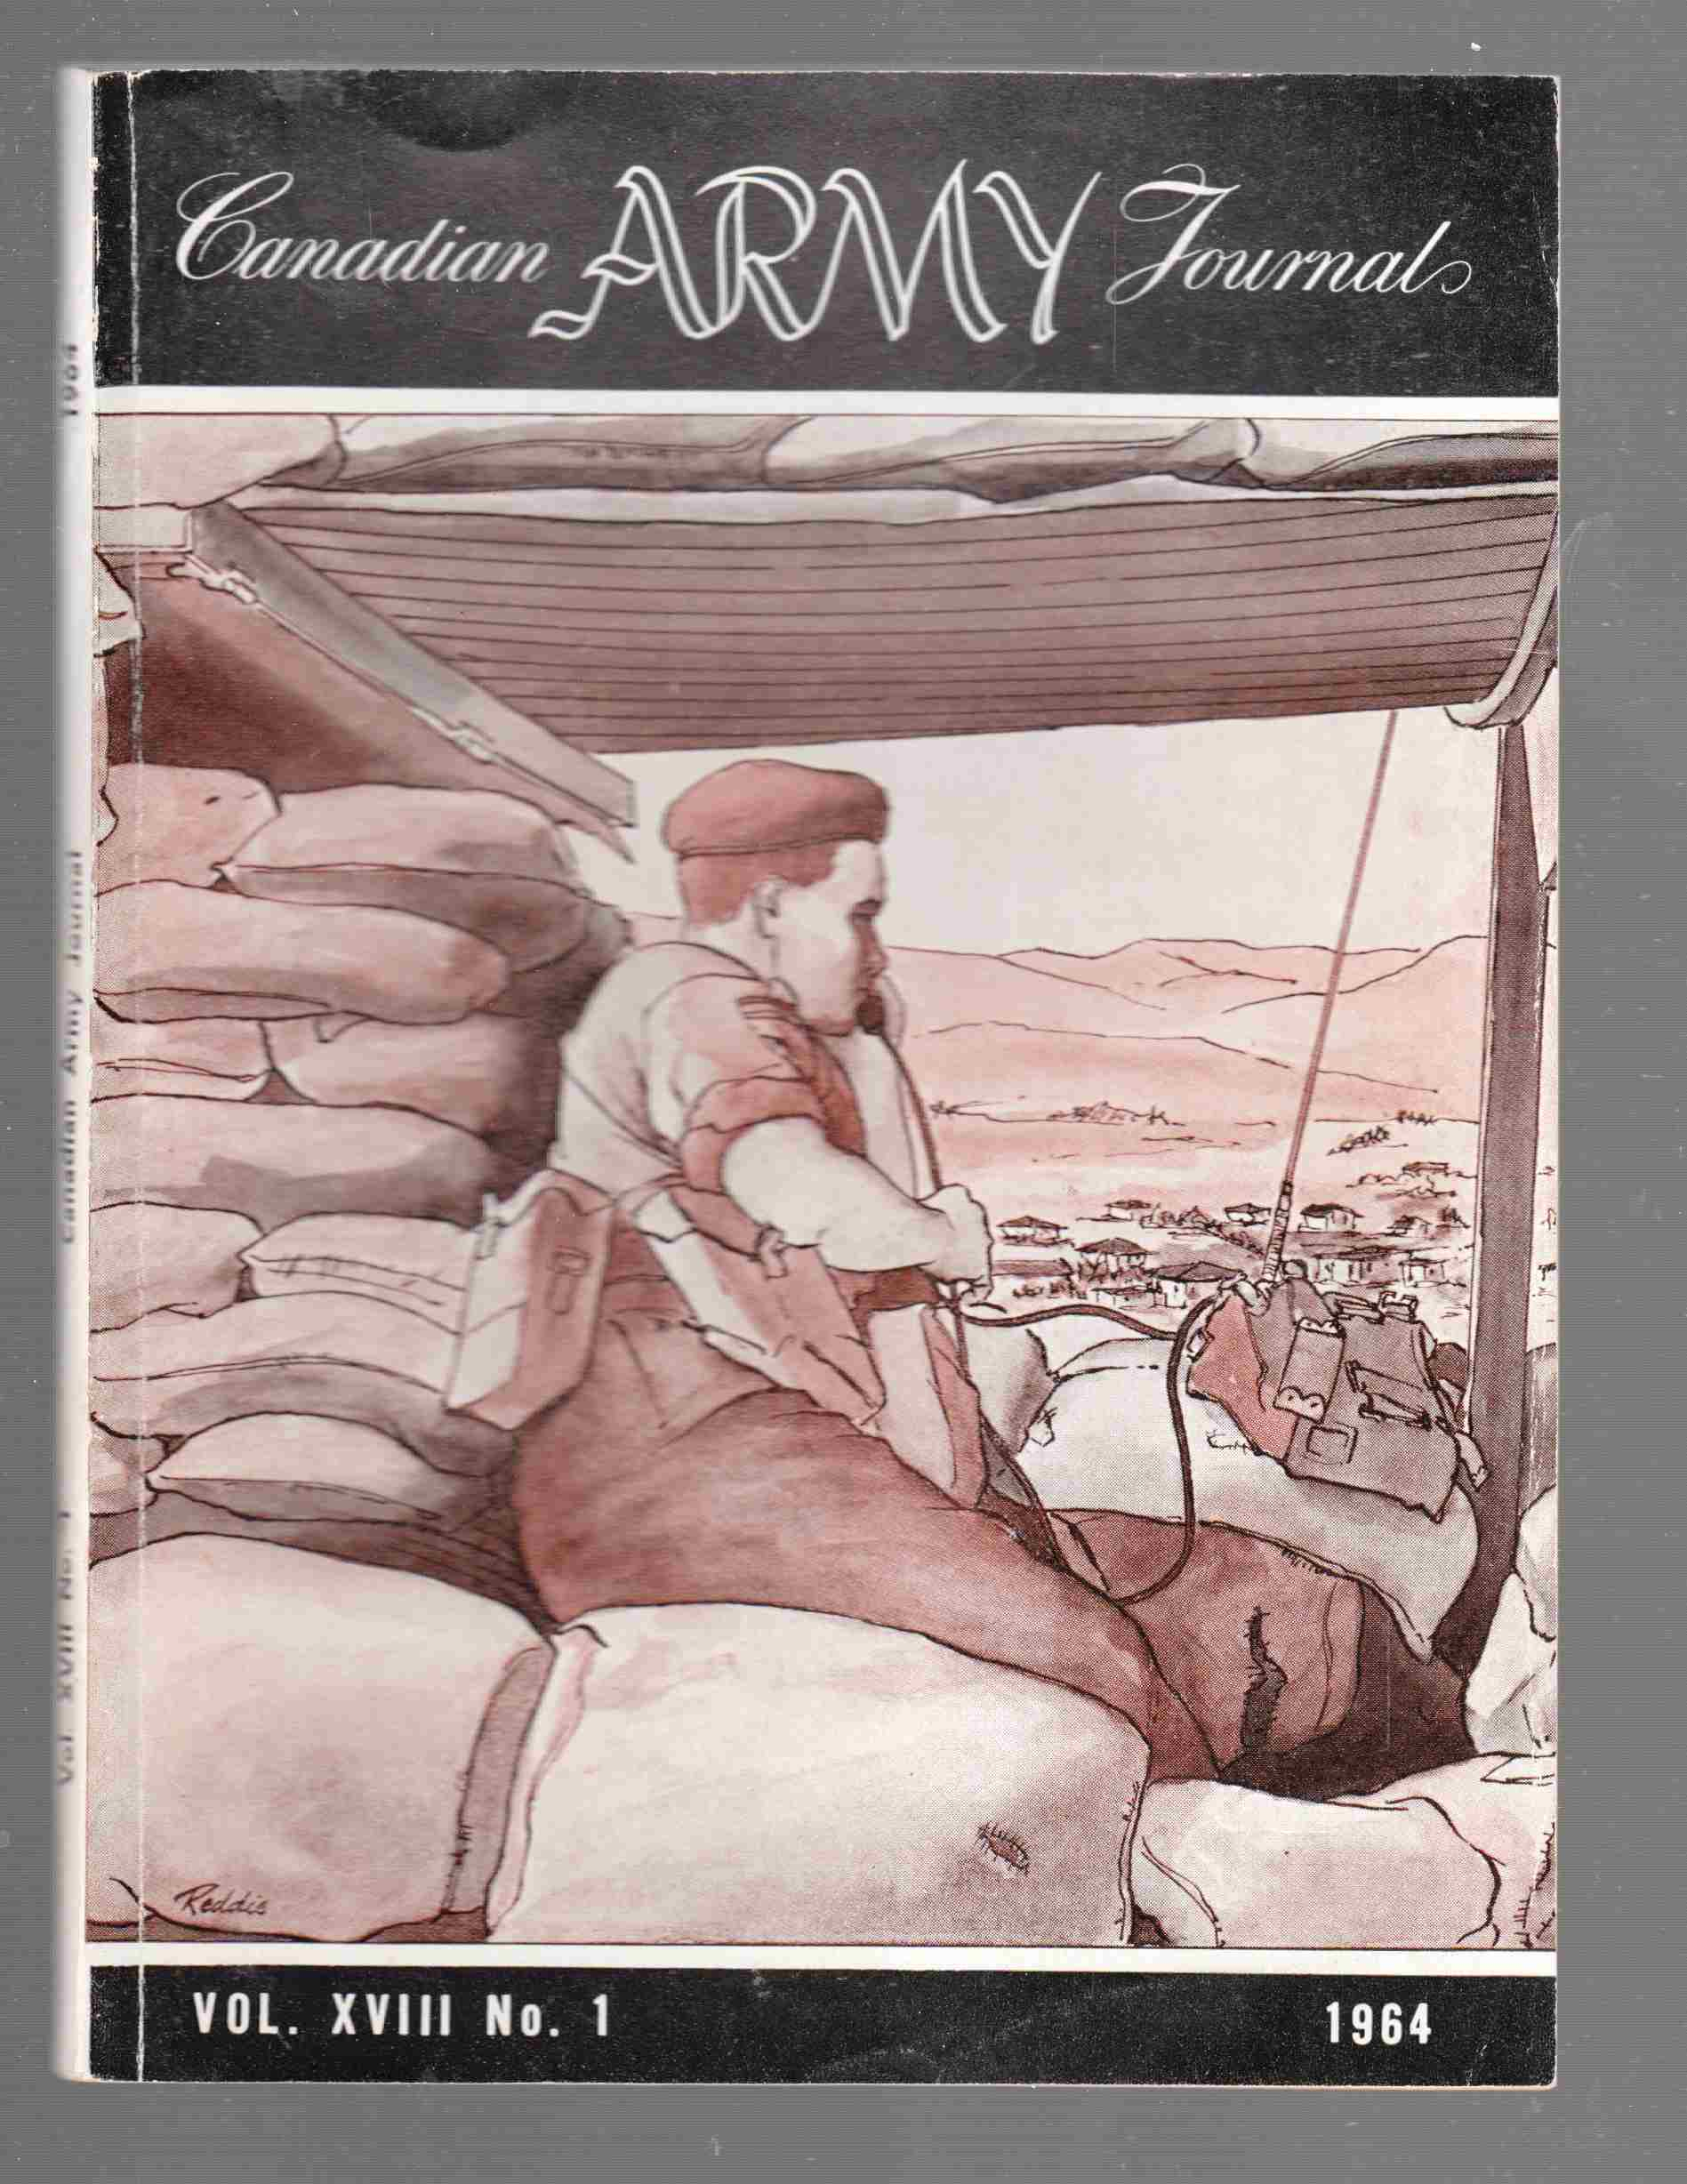 Image for The Canadian Army Journal Vol. XVIII No. 1 1964